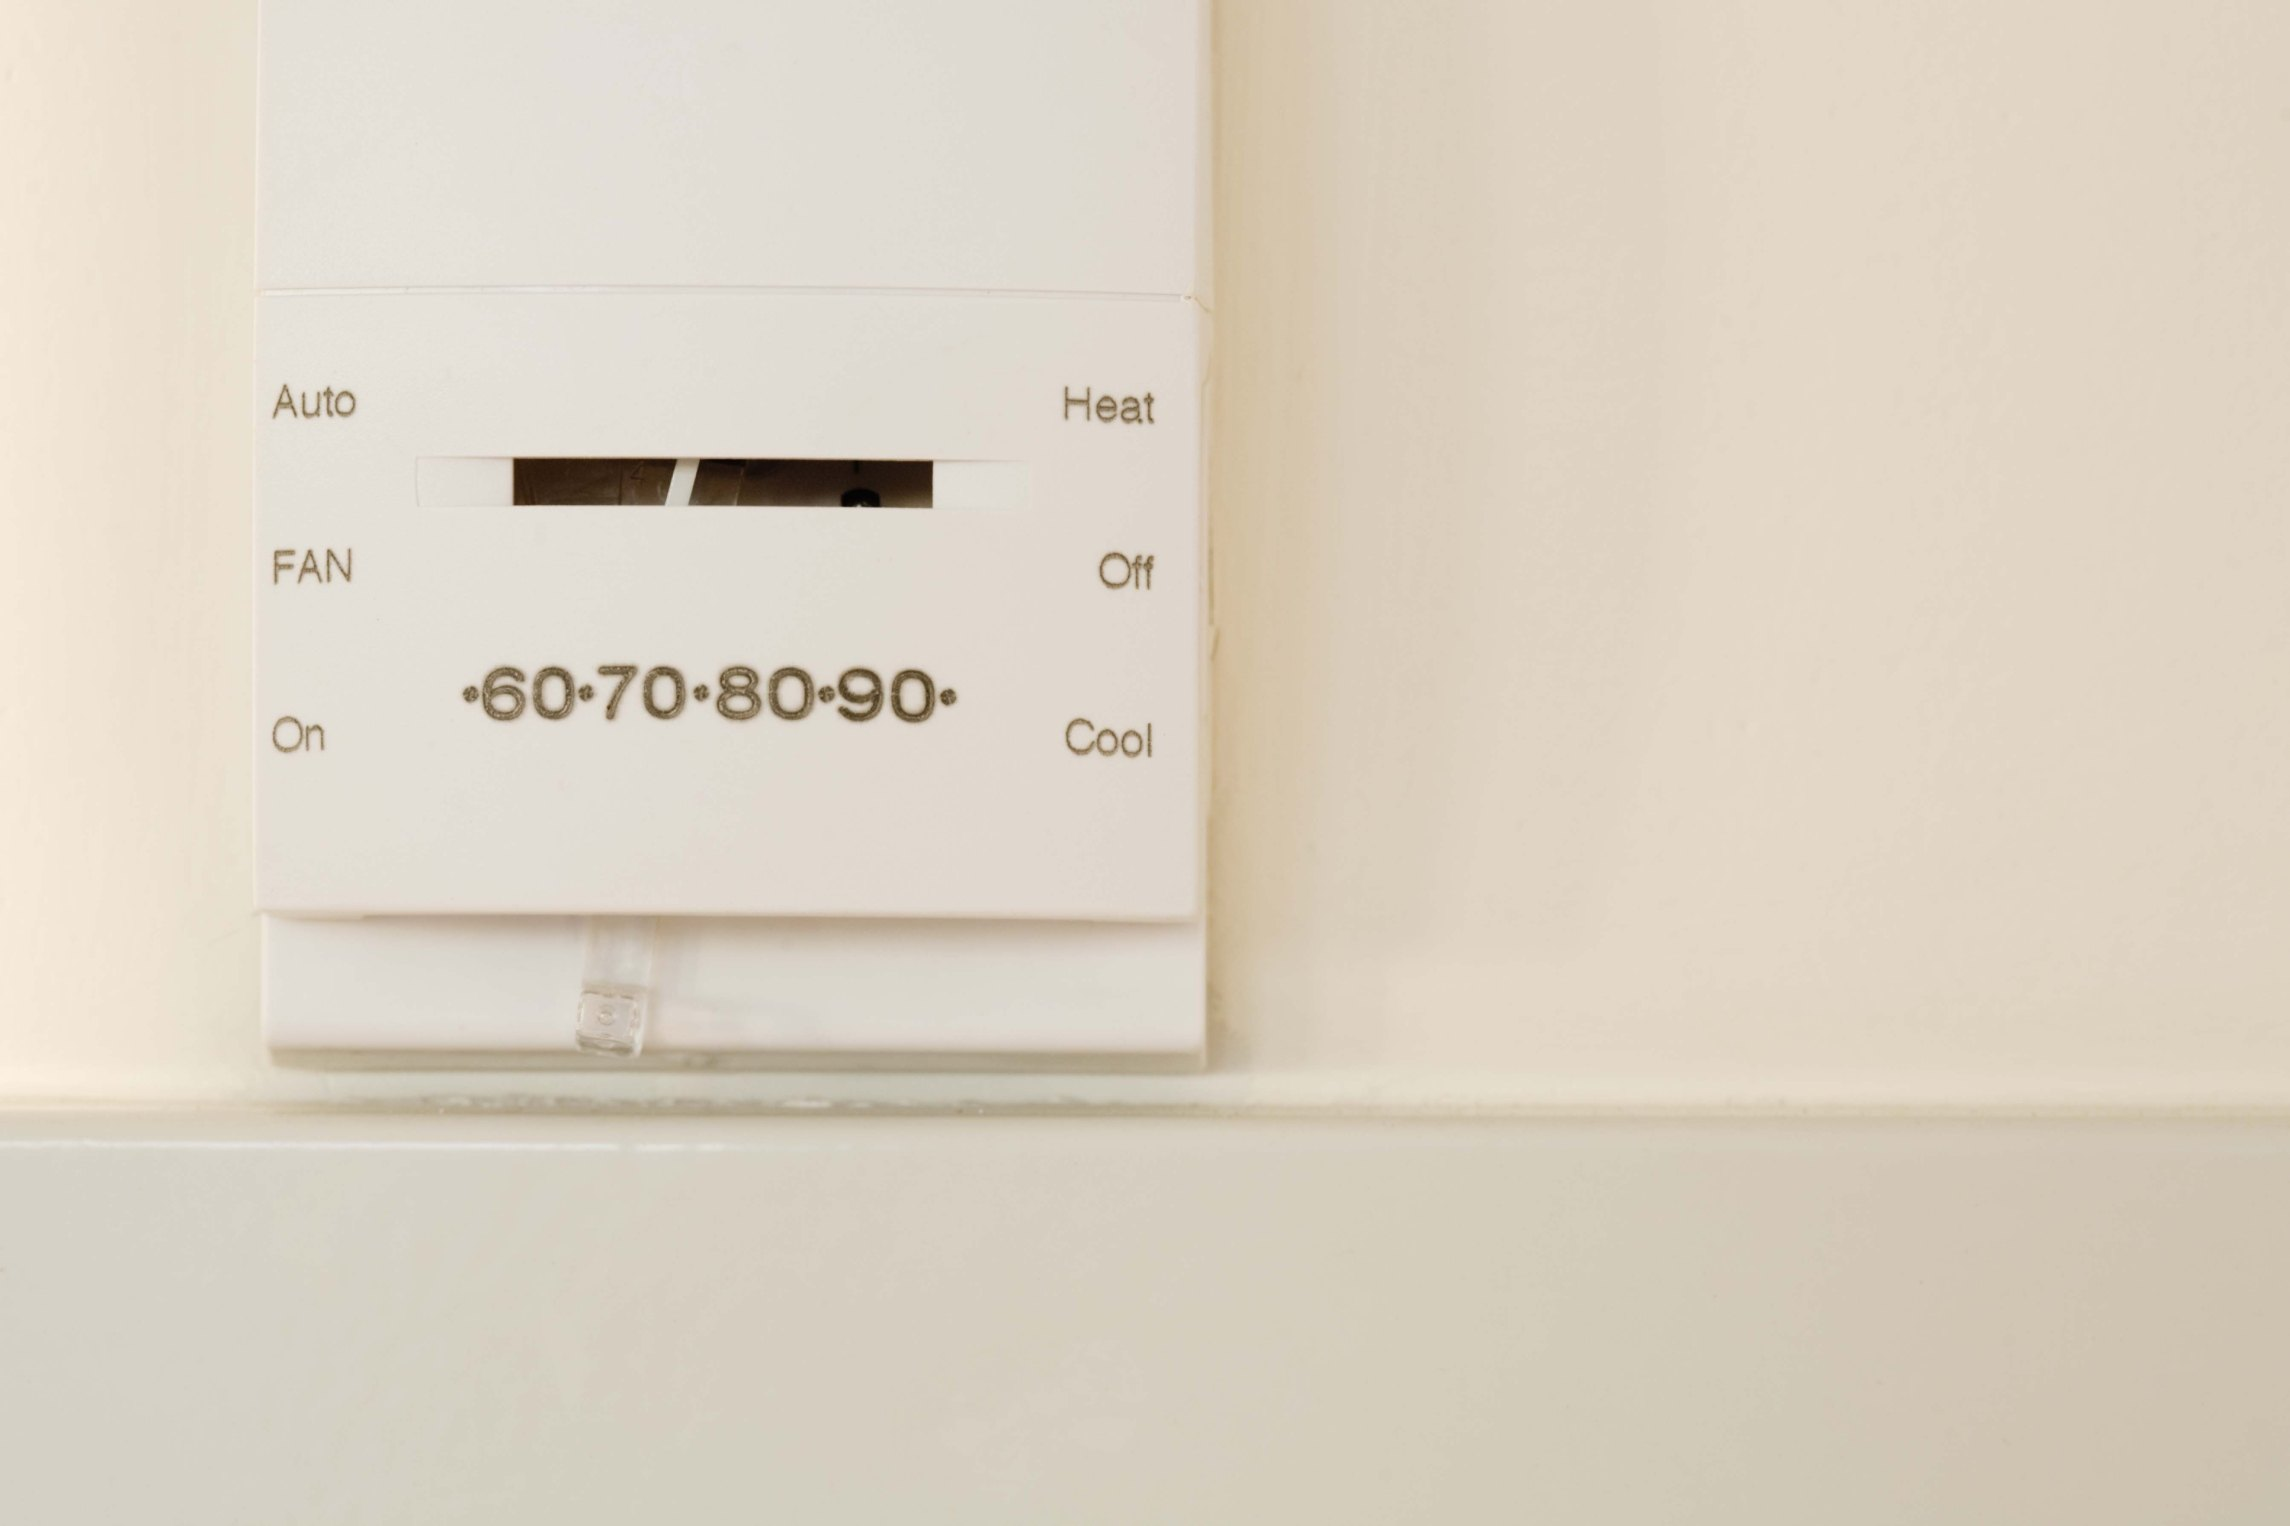 How To Install A Thermostat To Control A Forced Air